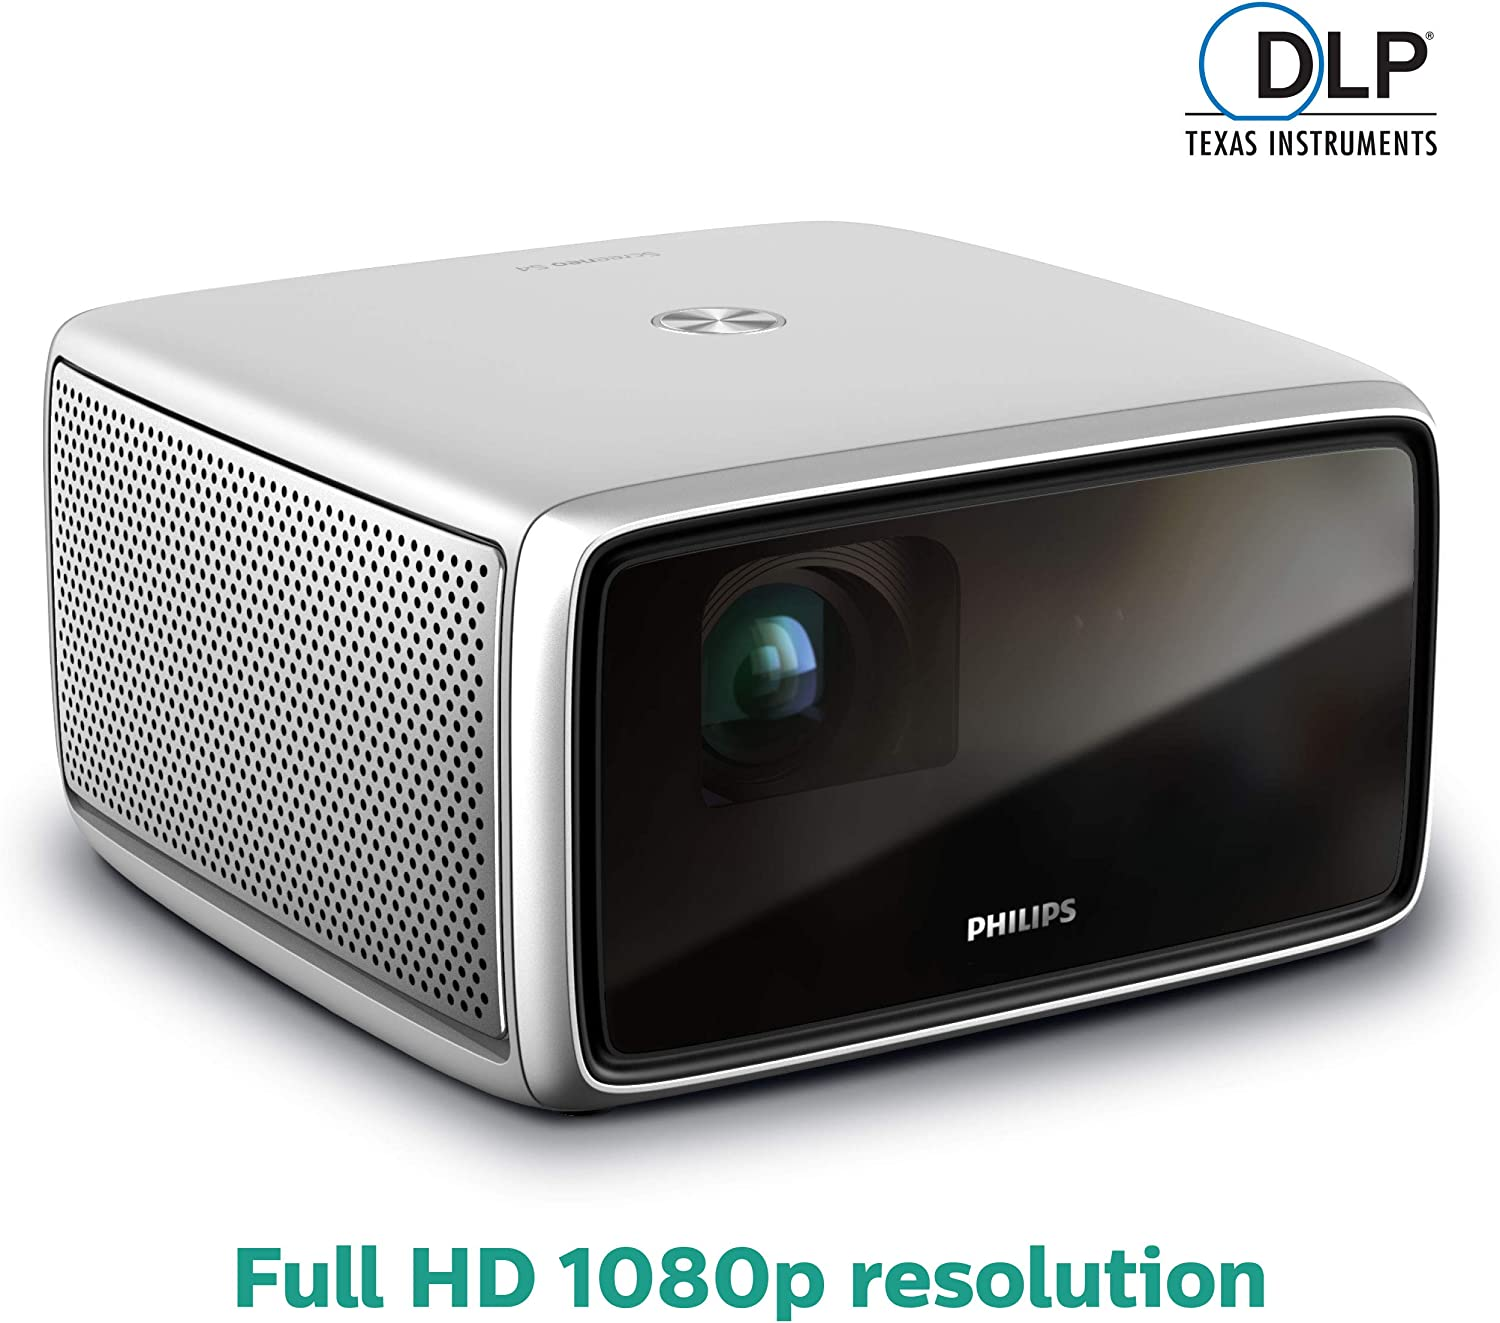 Philips Screeneo S6, 4K HDR, Android OS, Electric Keystone, Auto Focus, Digital Zoom